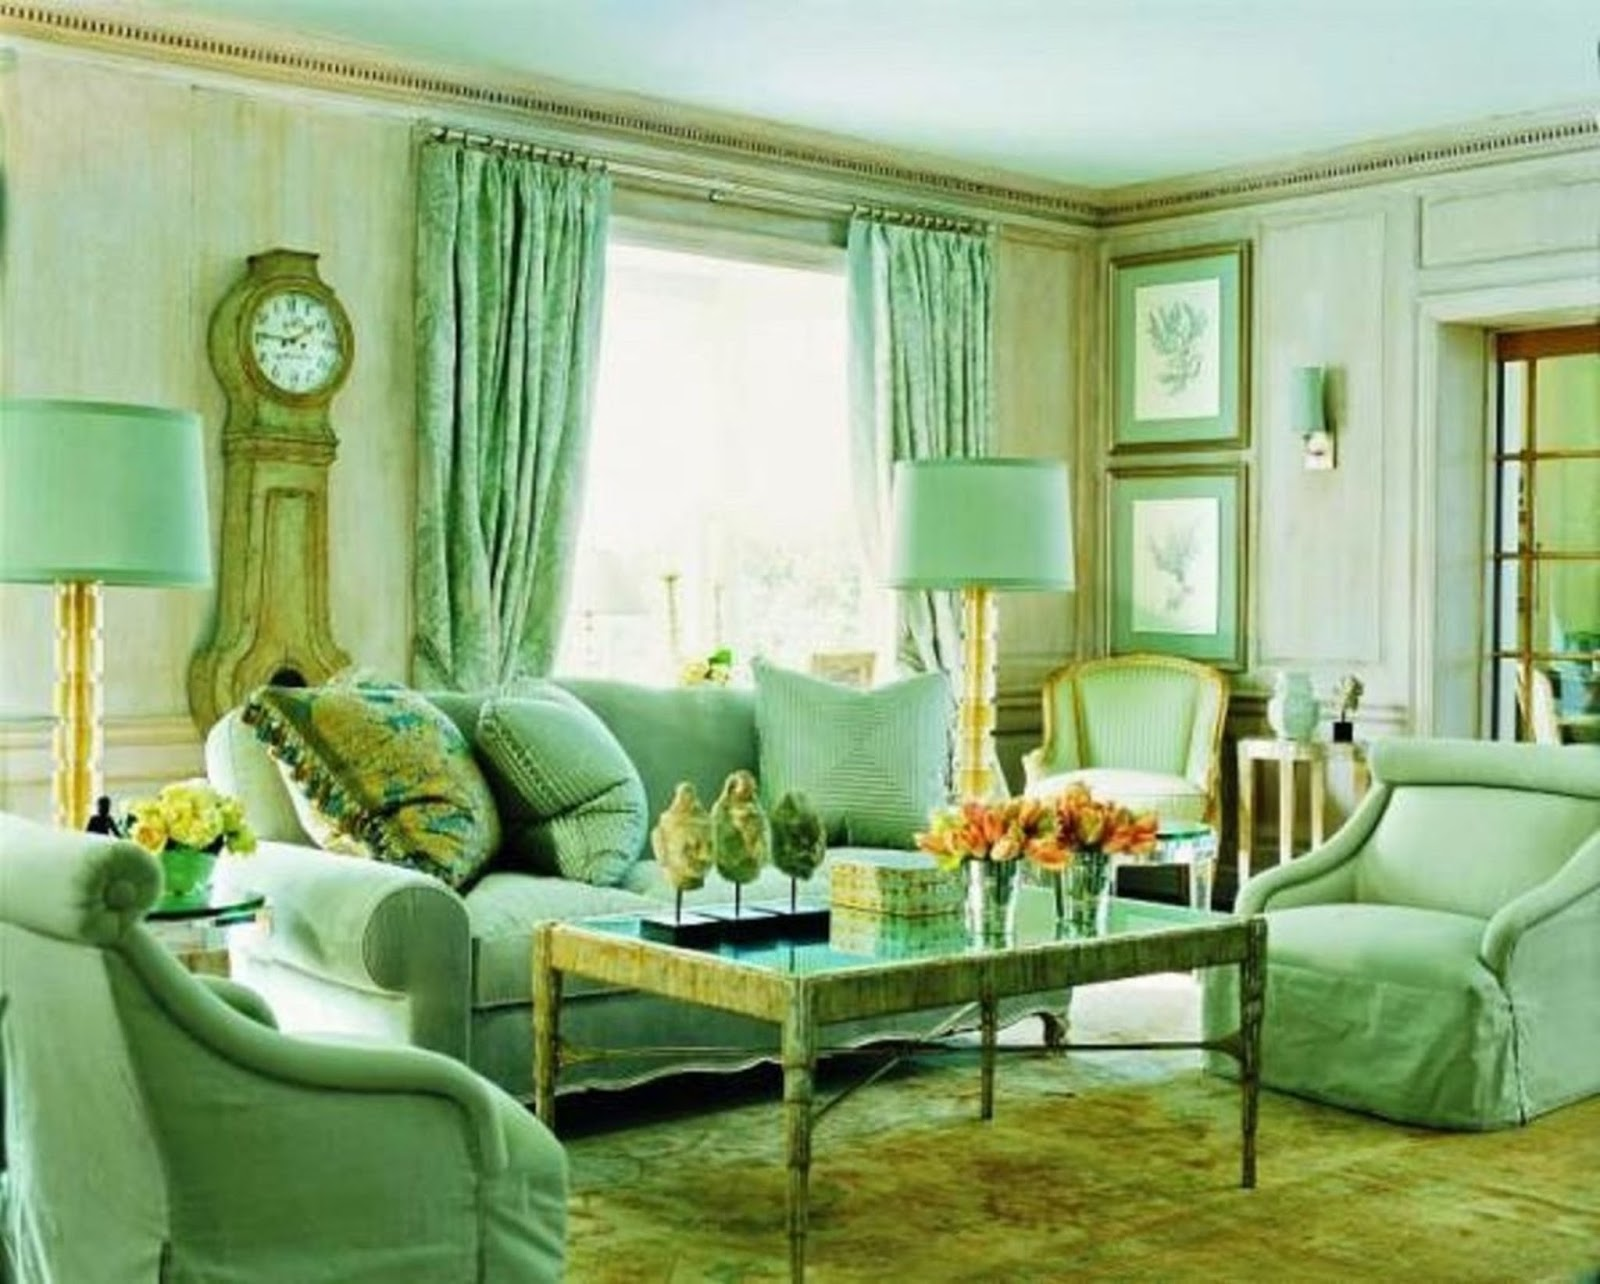 Green Interior Design and Furnitures  Bahay OFW